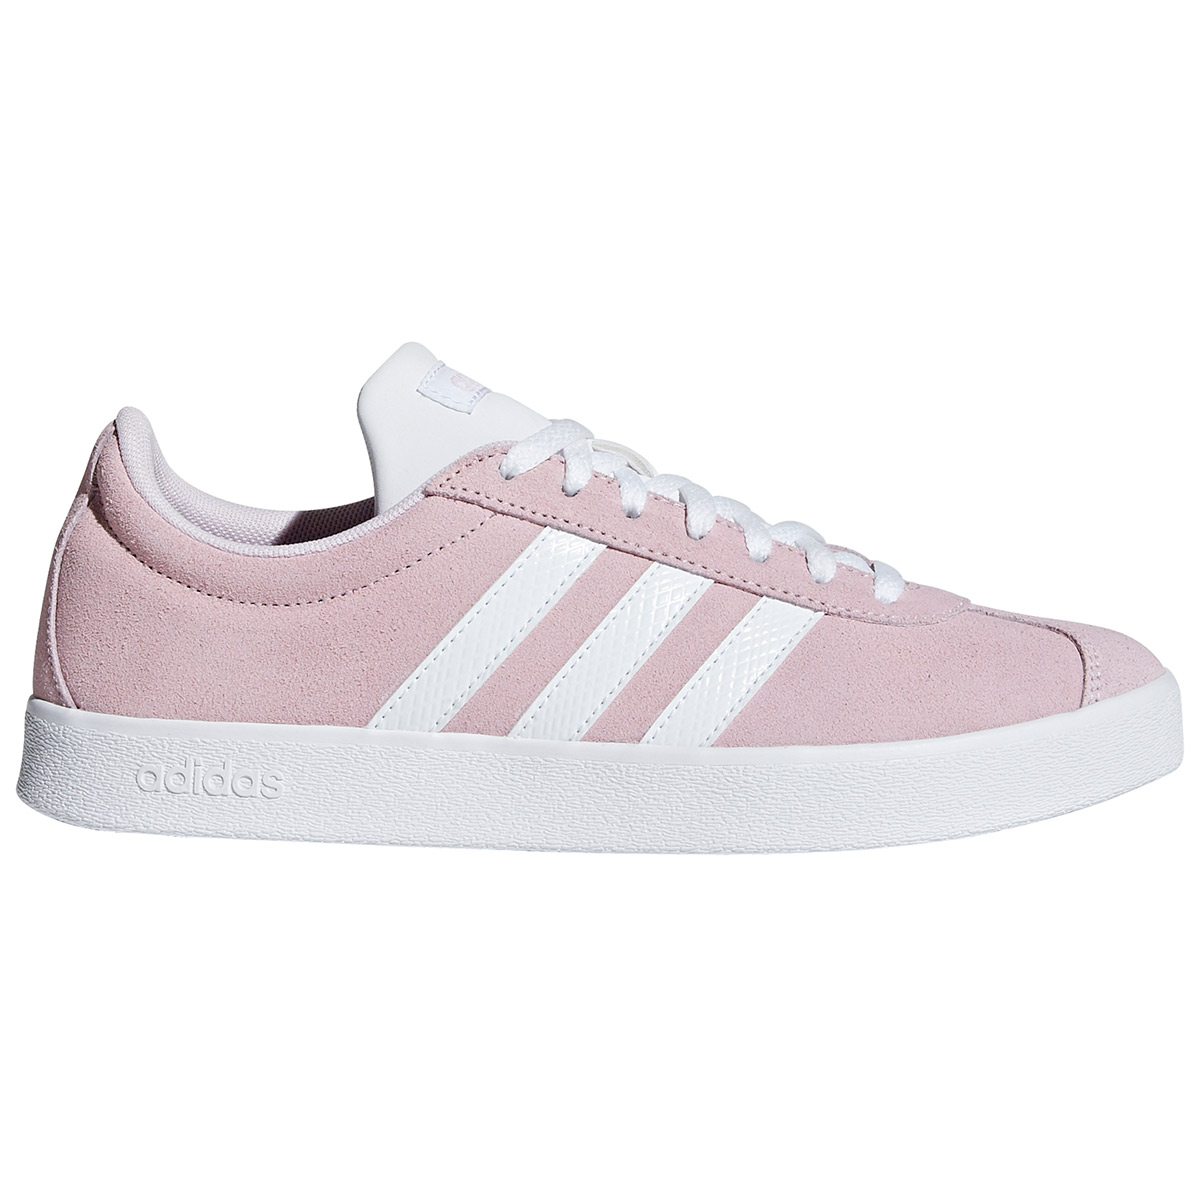 Adidas Women's Vl Court 2.0 Sneakers - Red, 10